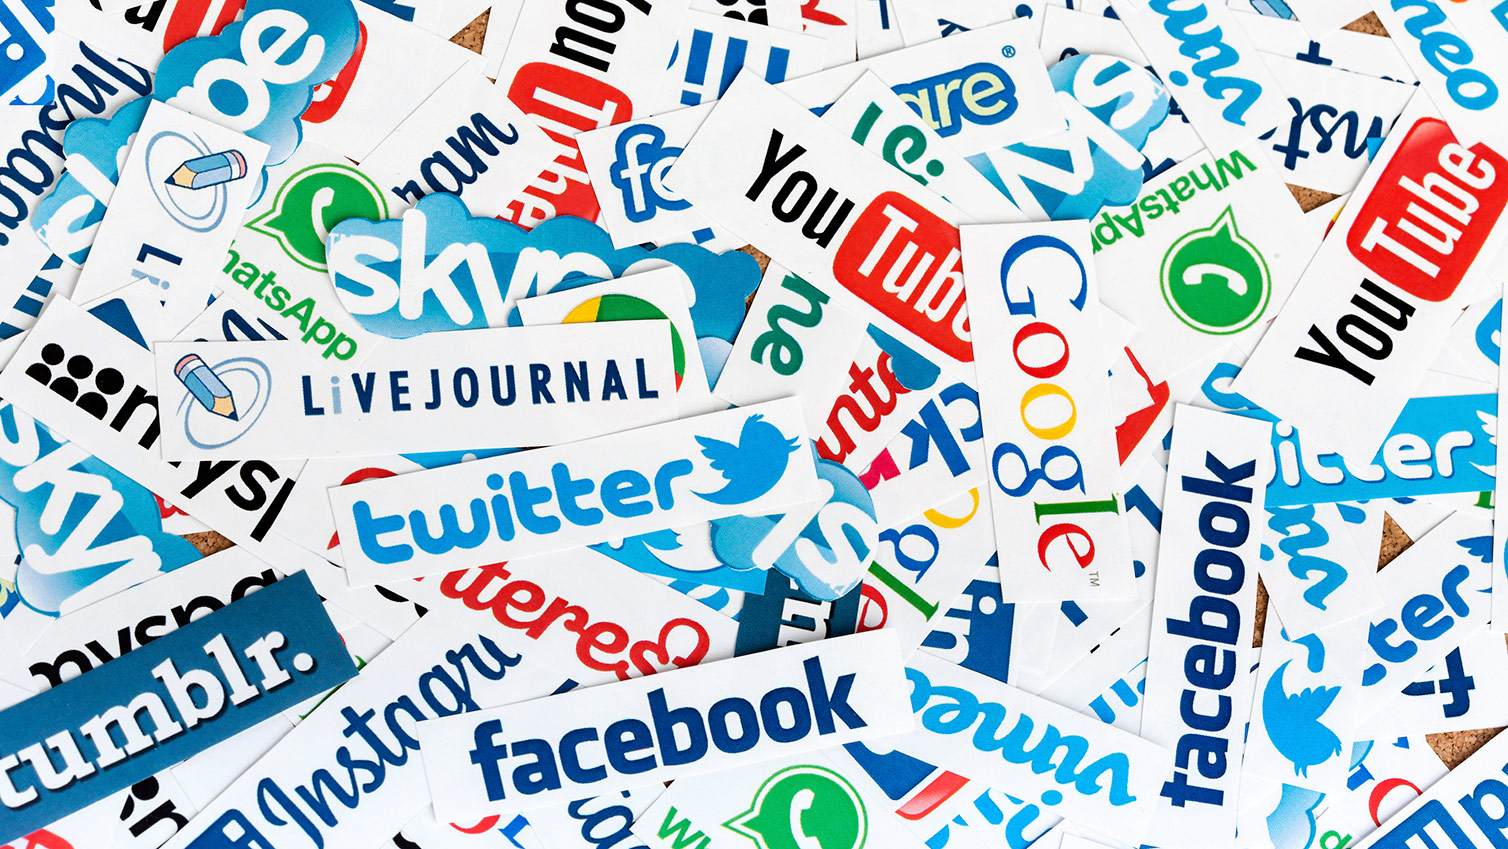 you want to be a social media fame then the software is a must-try for you. So go ahead and buy the software.